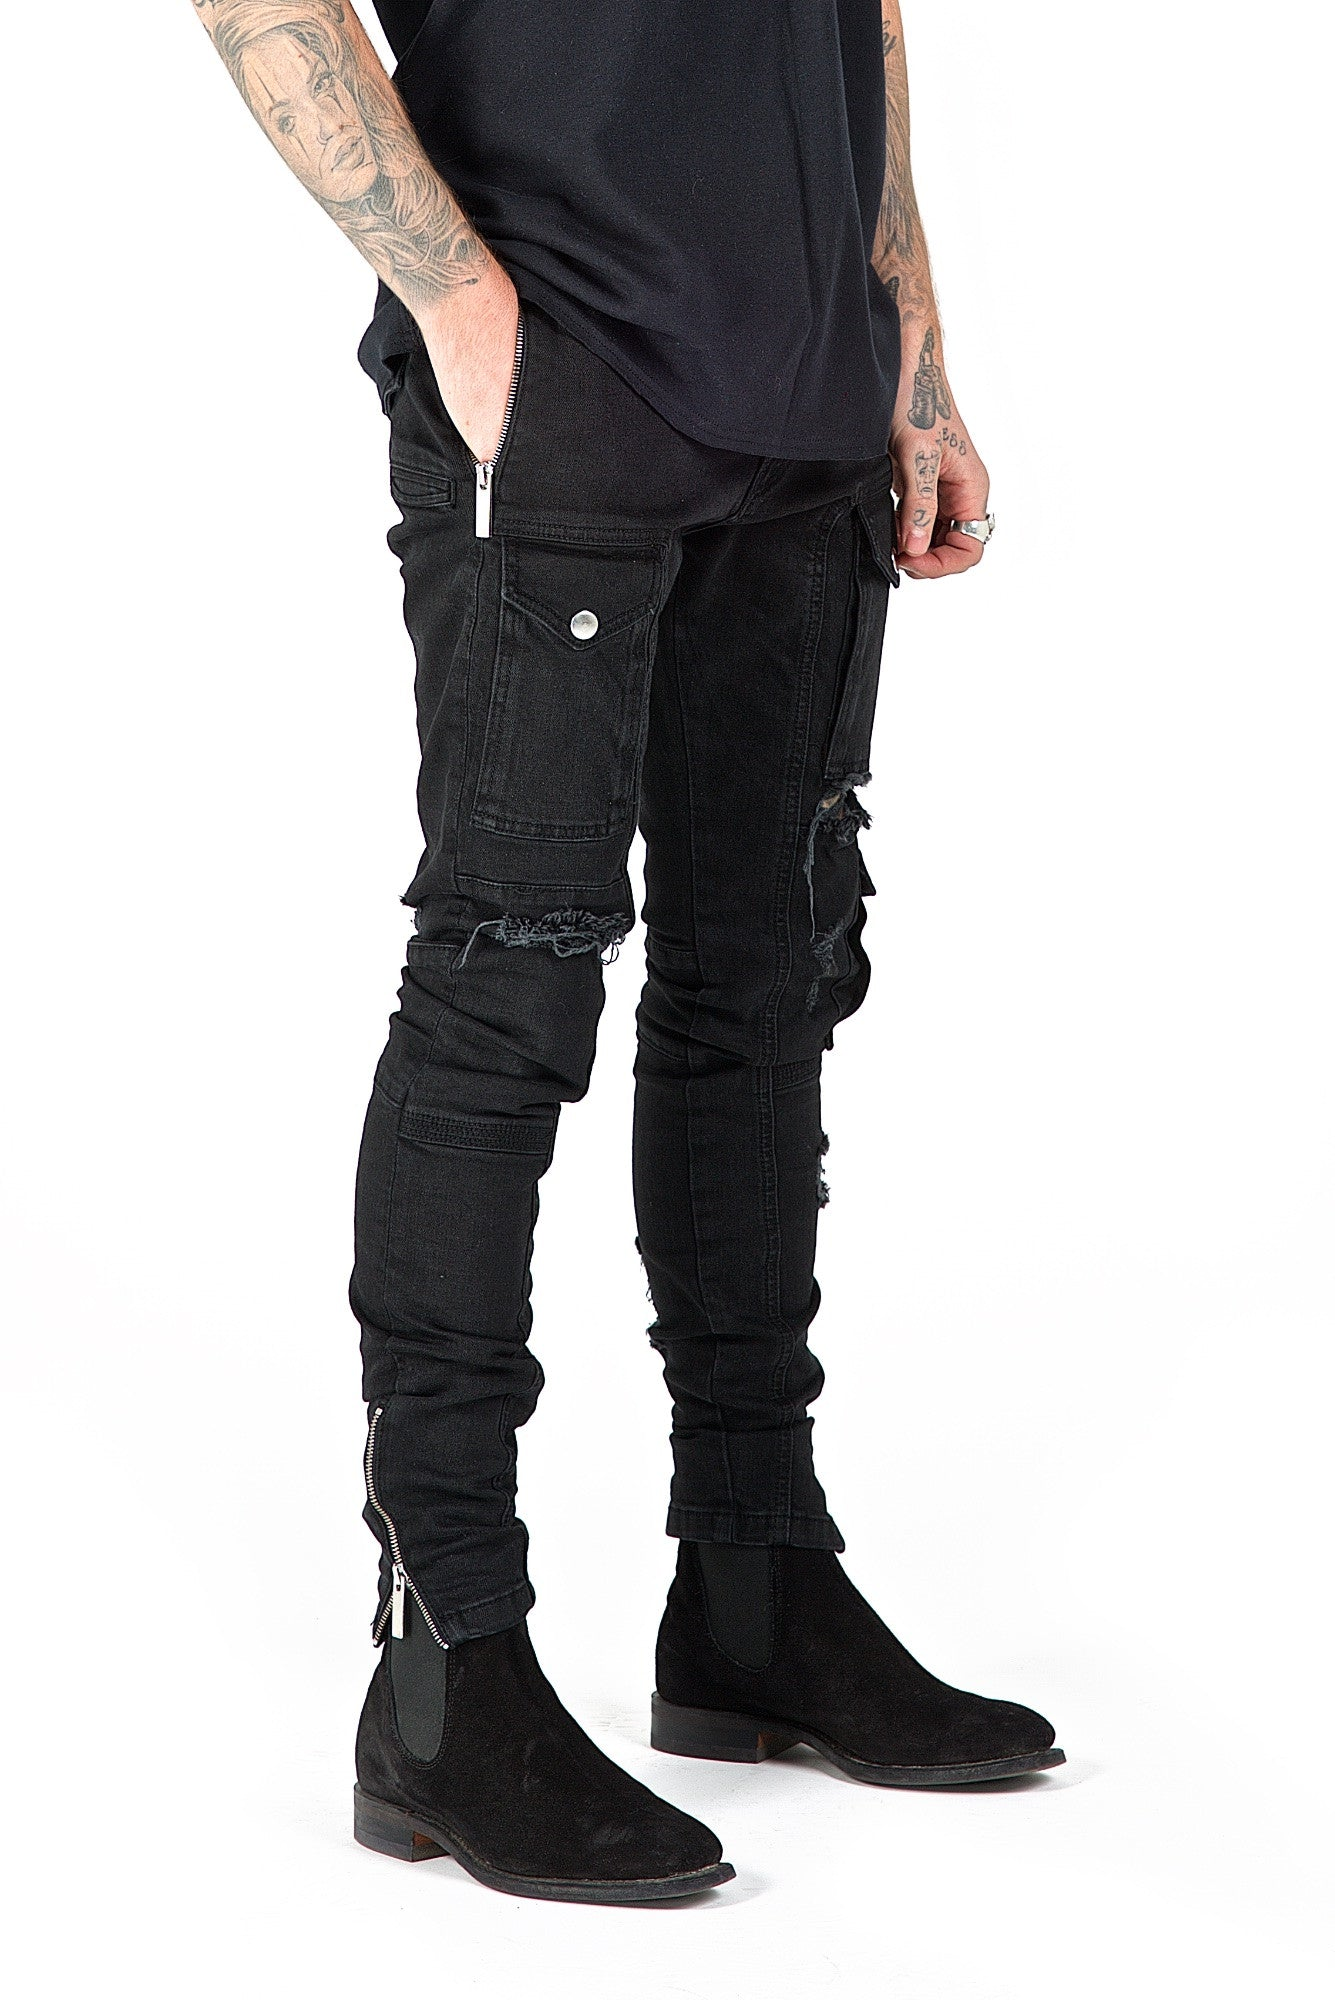 Kago Jeans Black Distressed